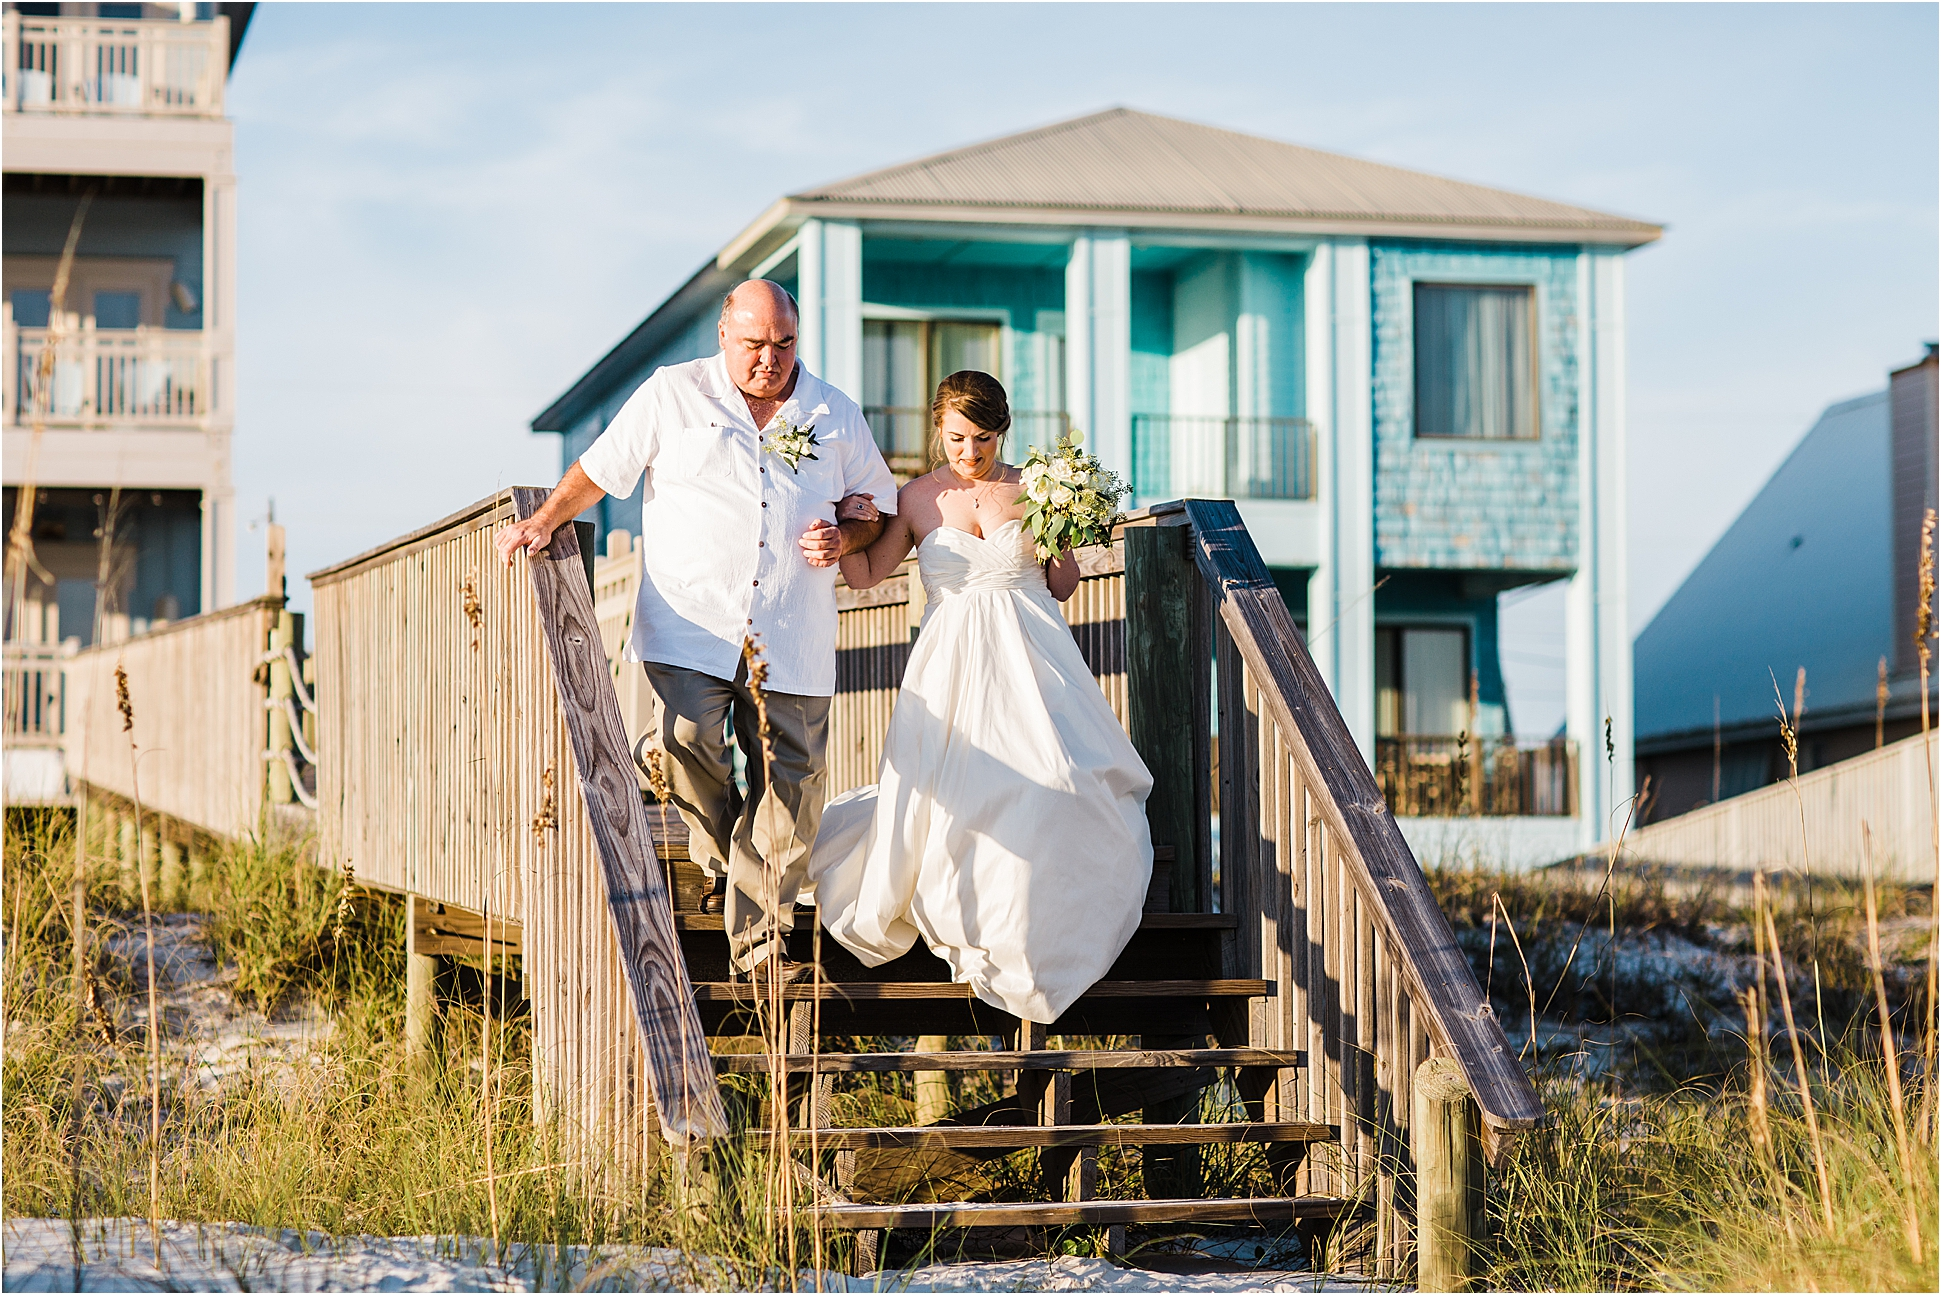 Weddings Photographer in Gulf Shores